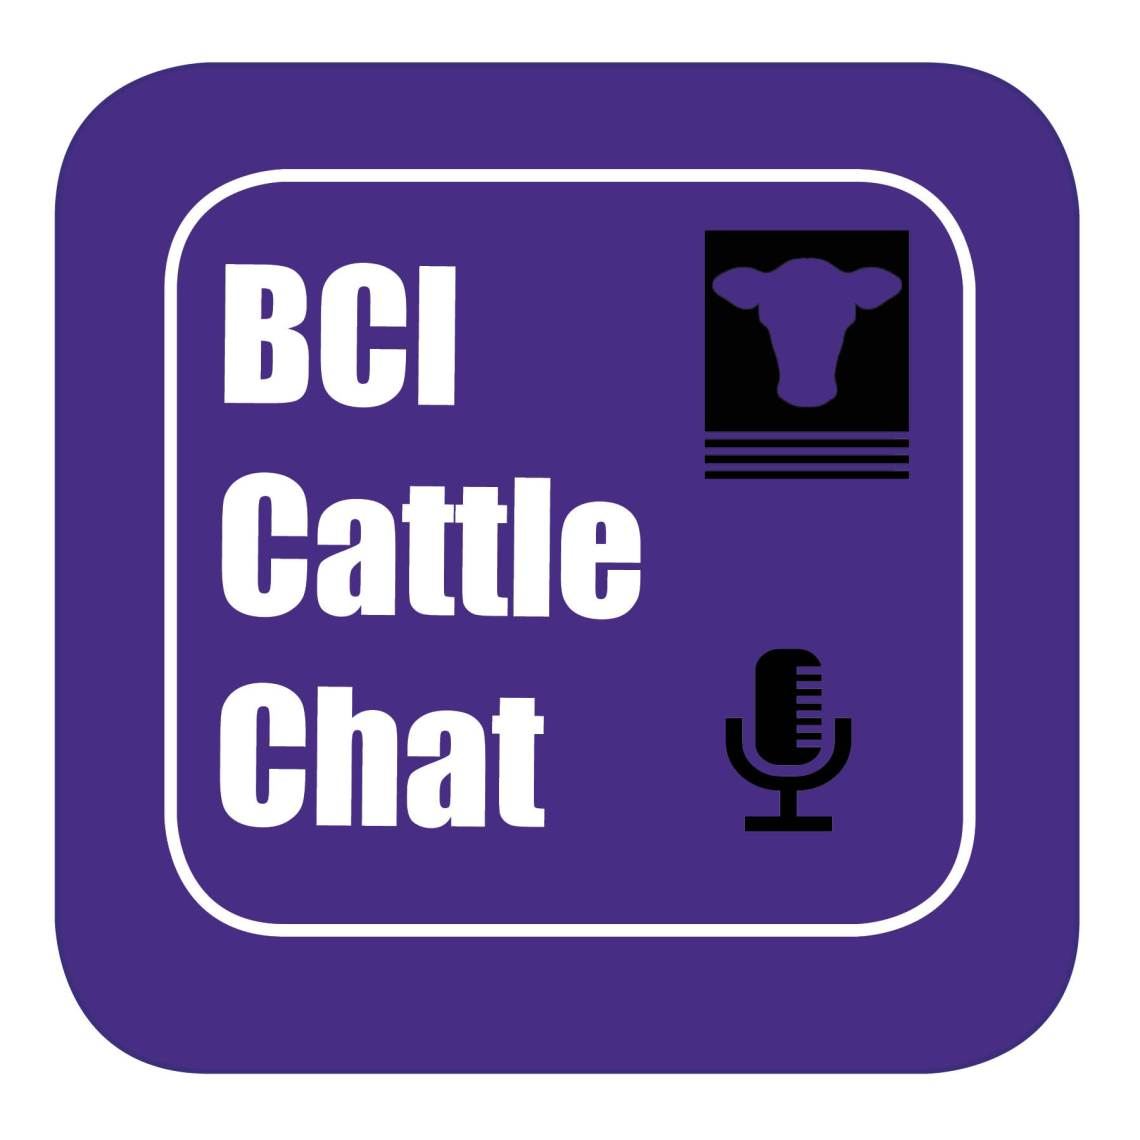 BCI Cattle Chat Final Logo